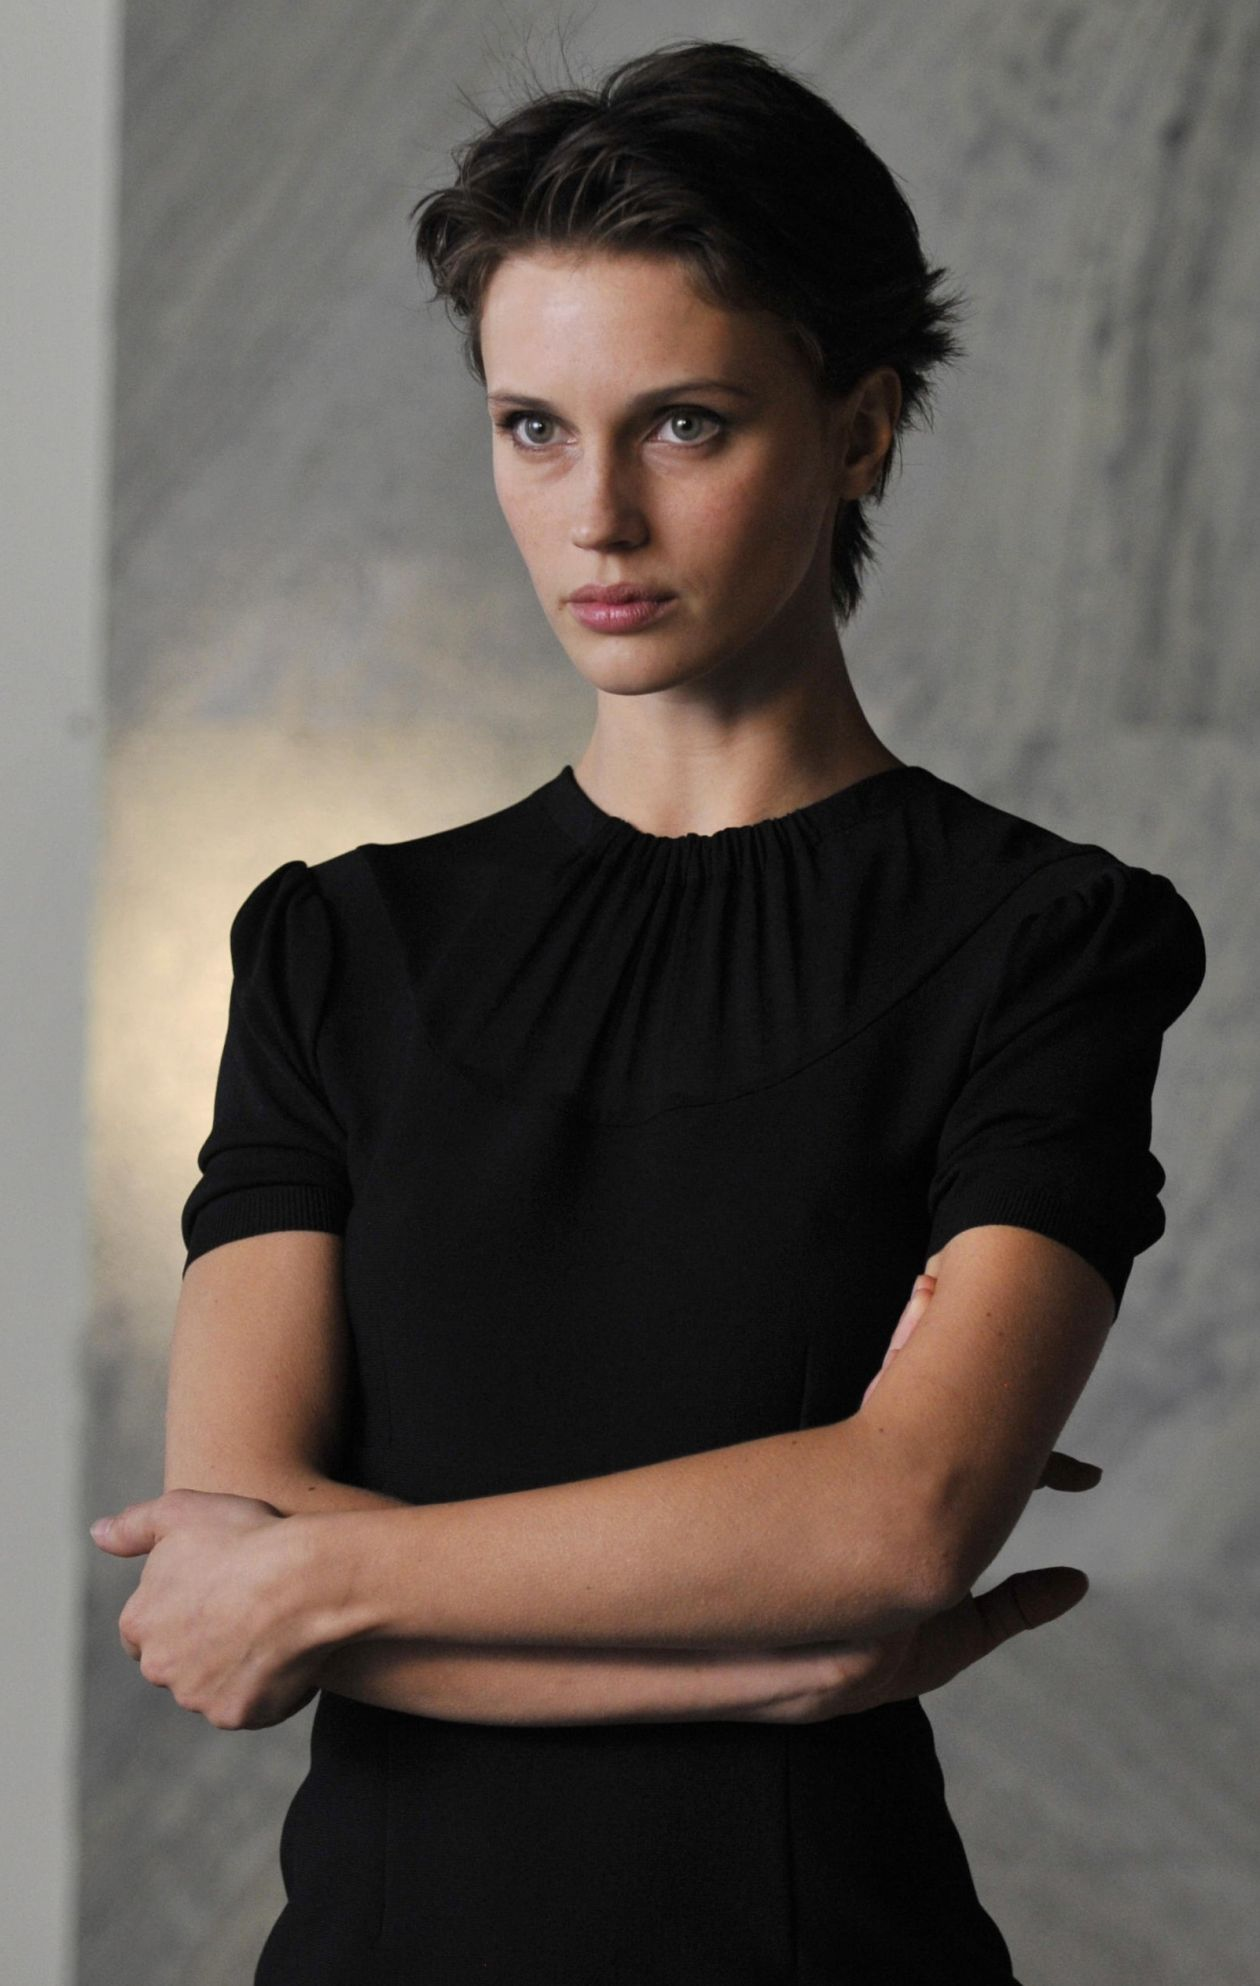 Marine Vacth French actress actrice comédienne | L'amant double  François Ozon, 2017